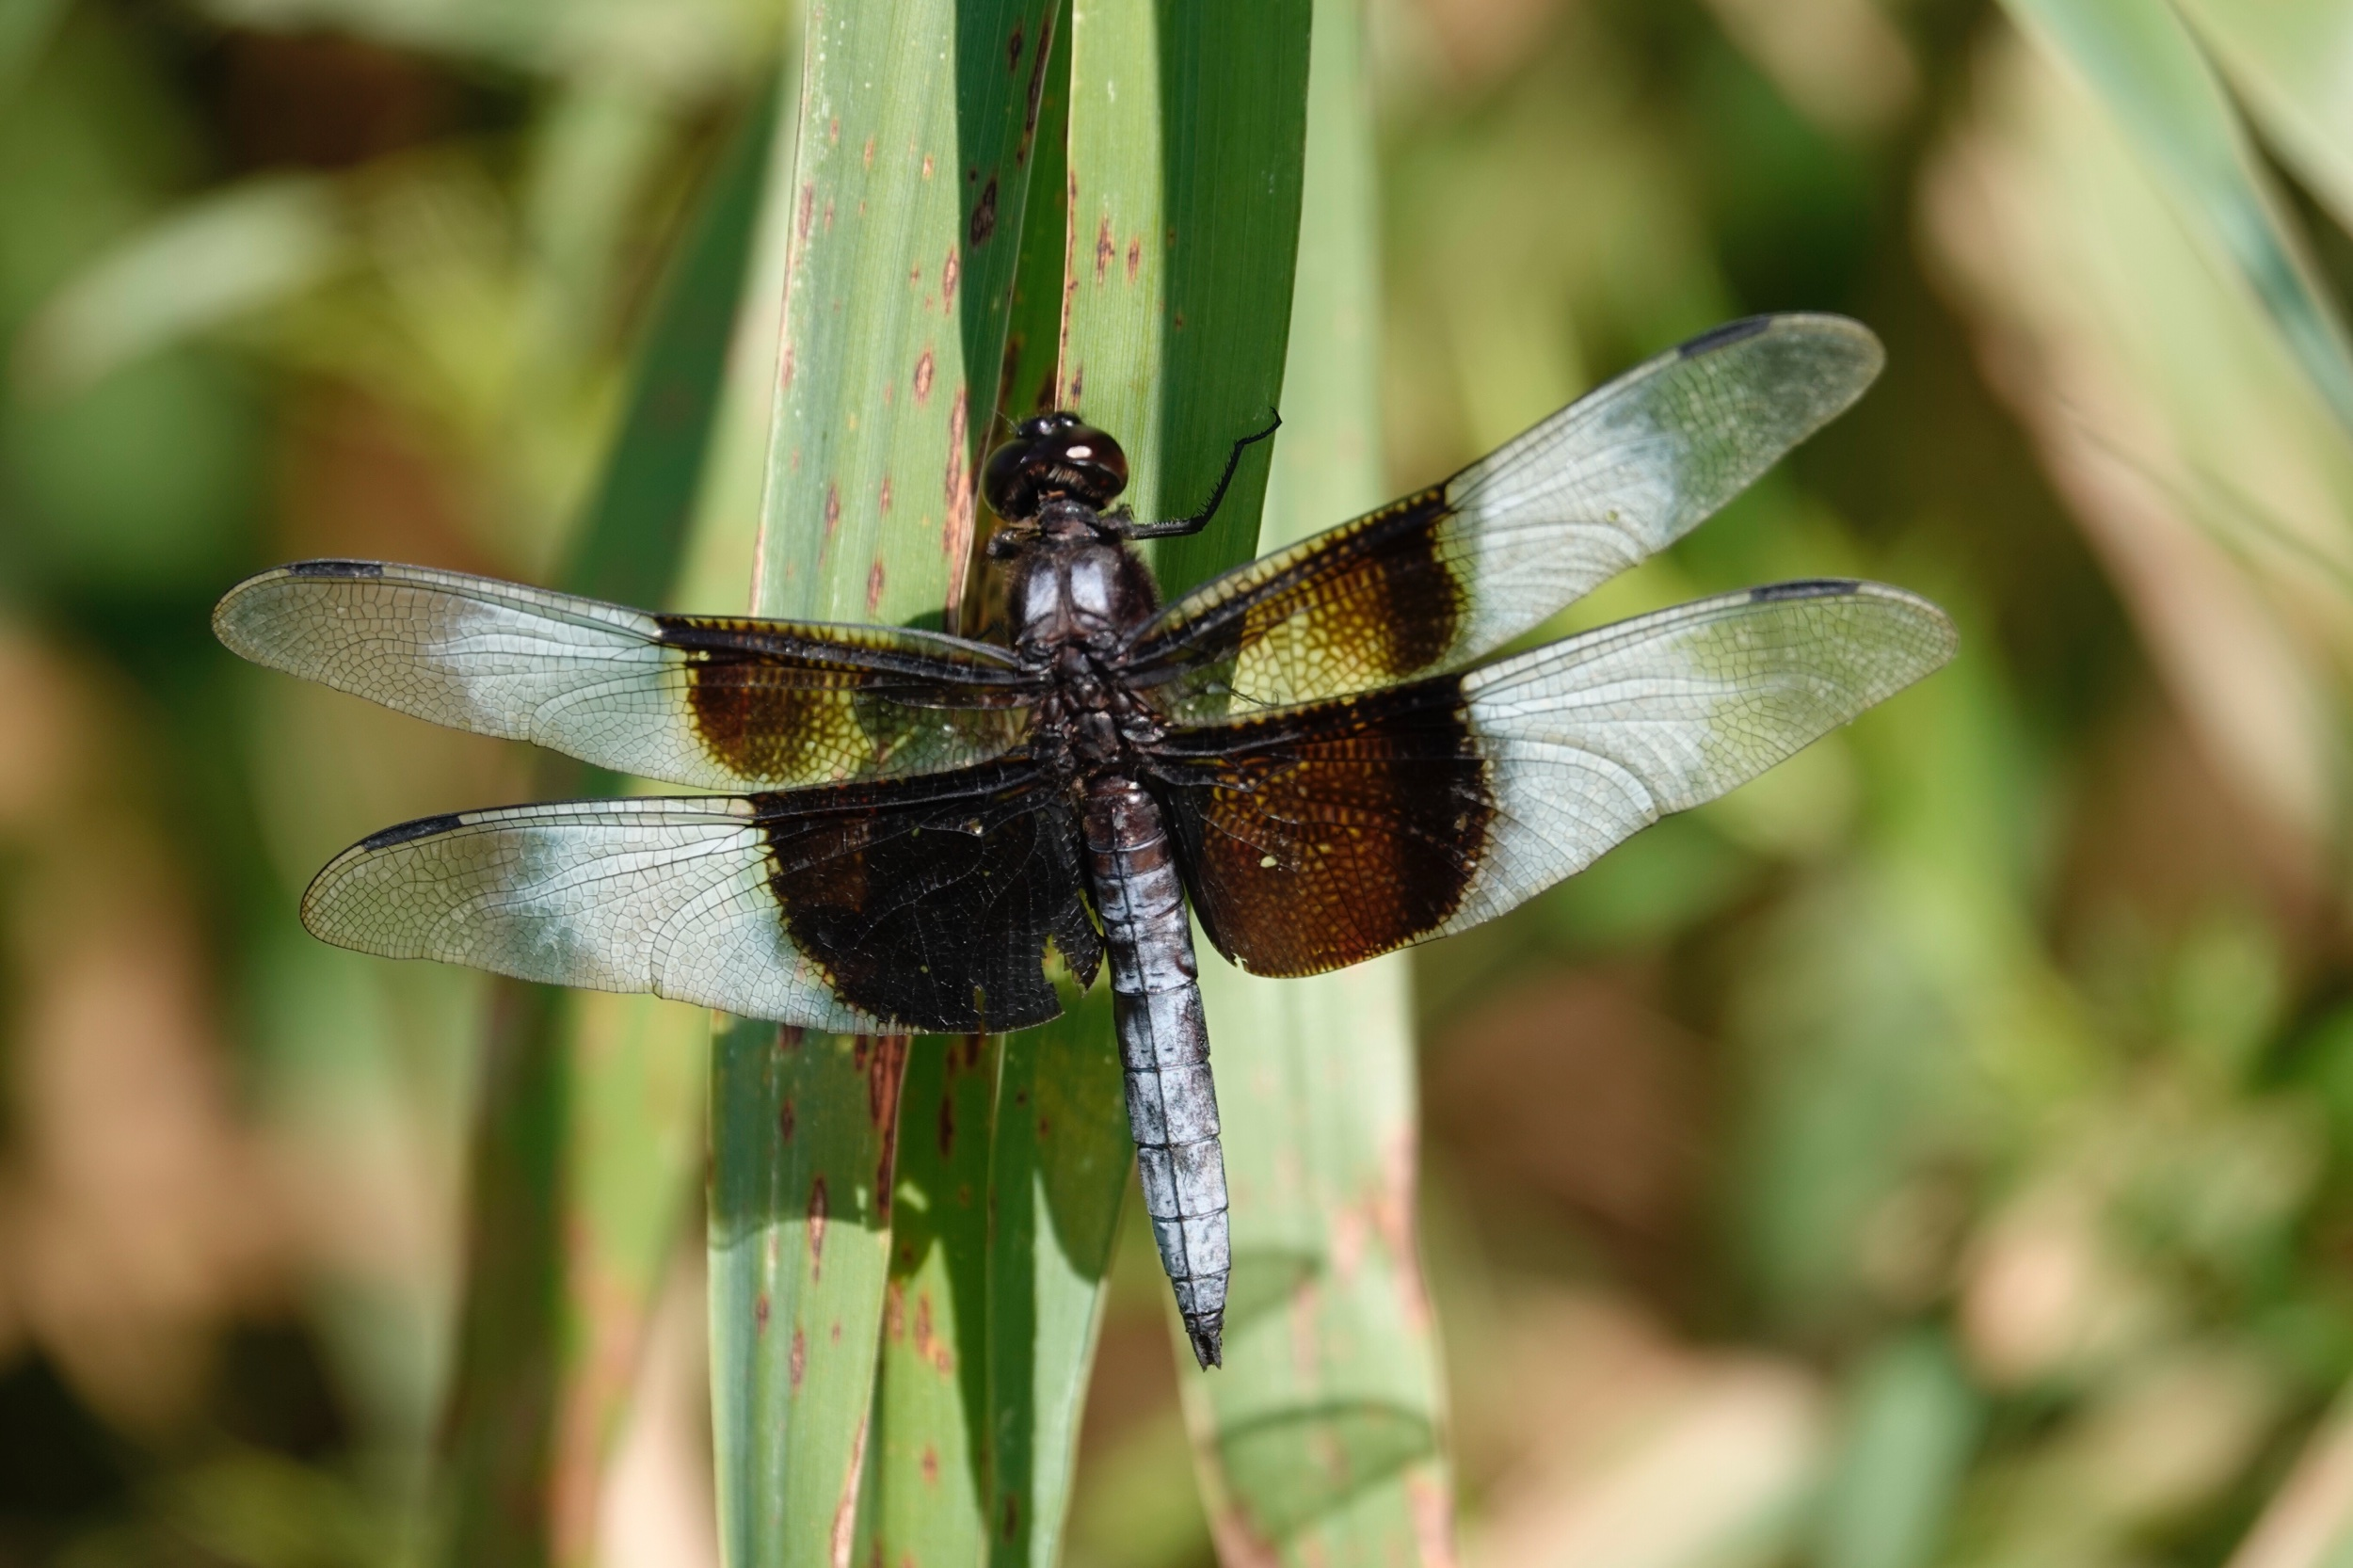 The species name of the Widow Skimmer dragonfly means sorrowful as its wings seem to be draped in mourning crepe.